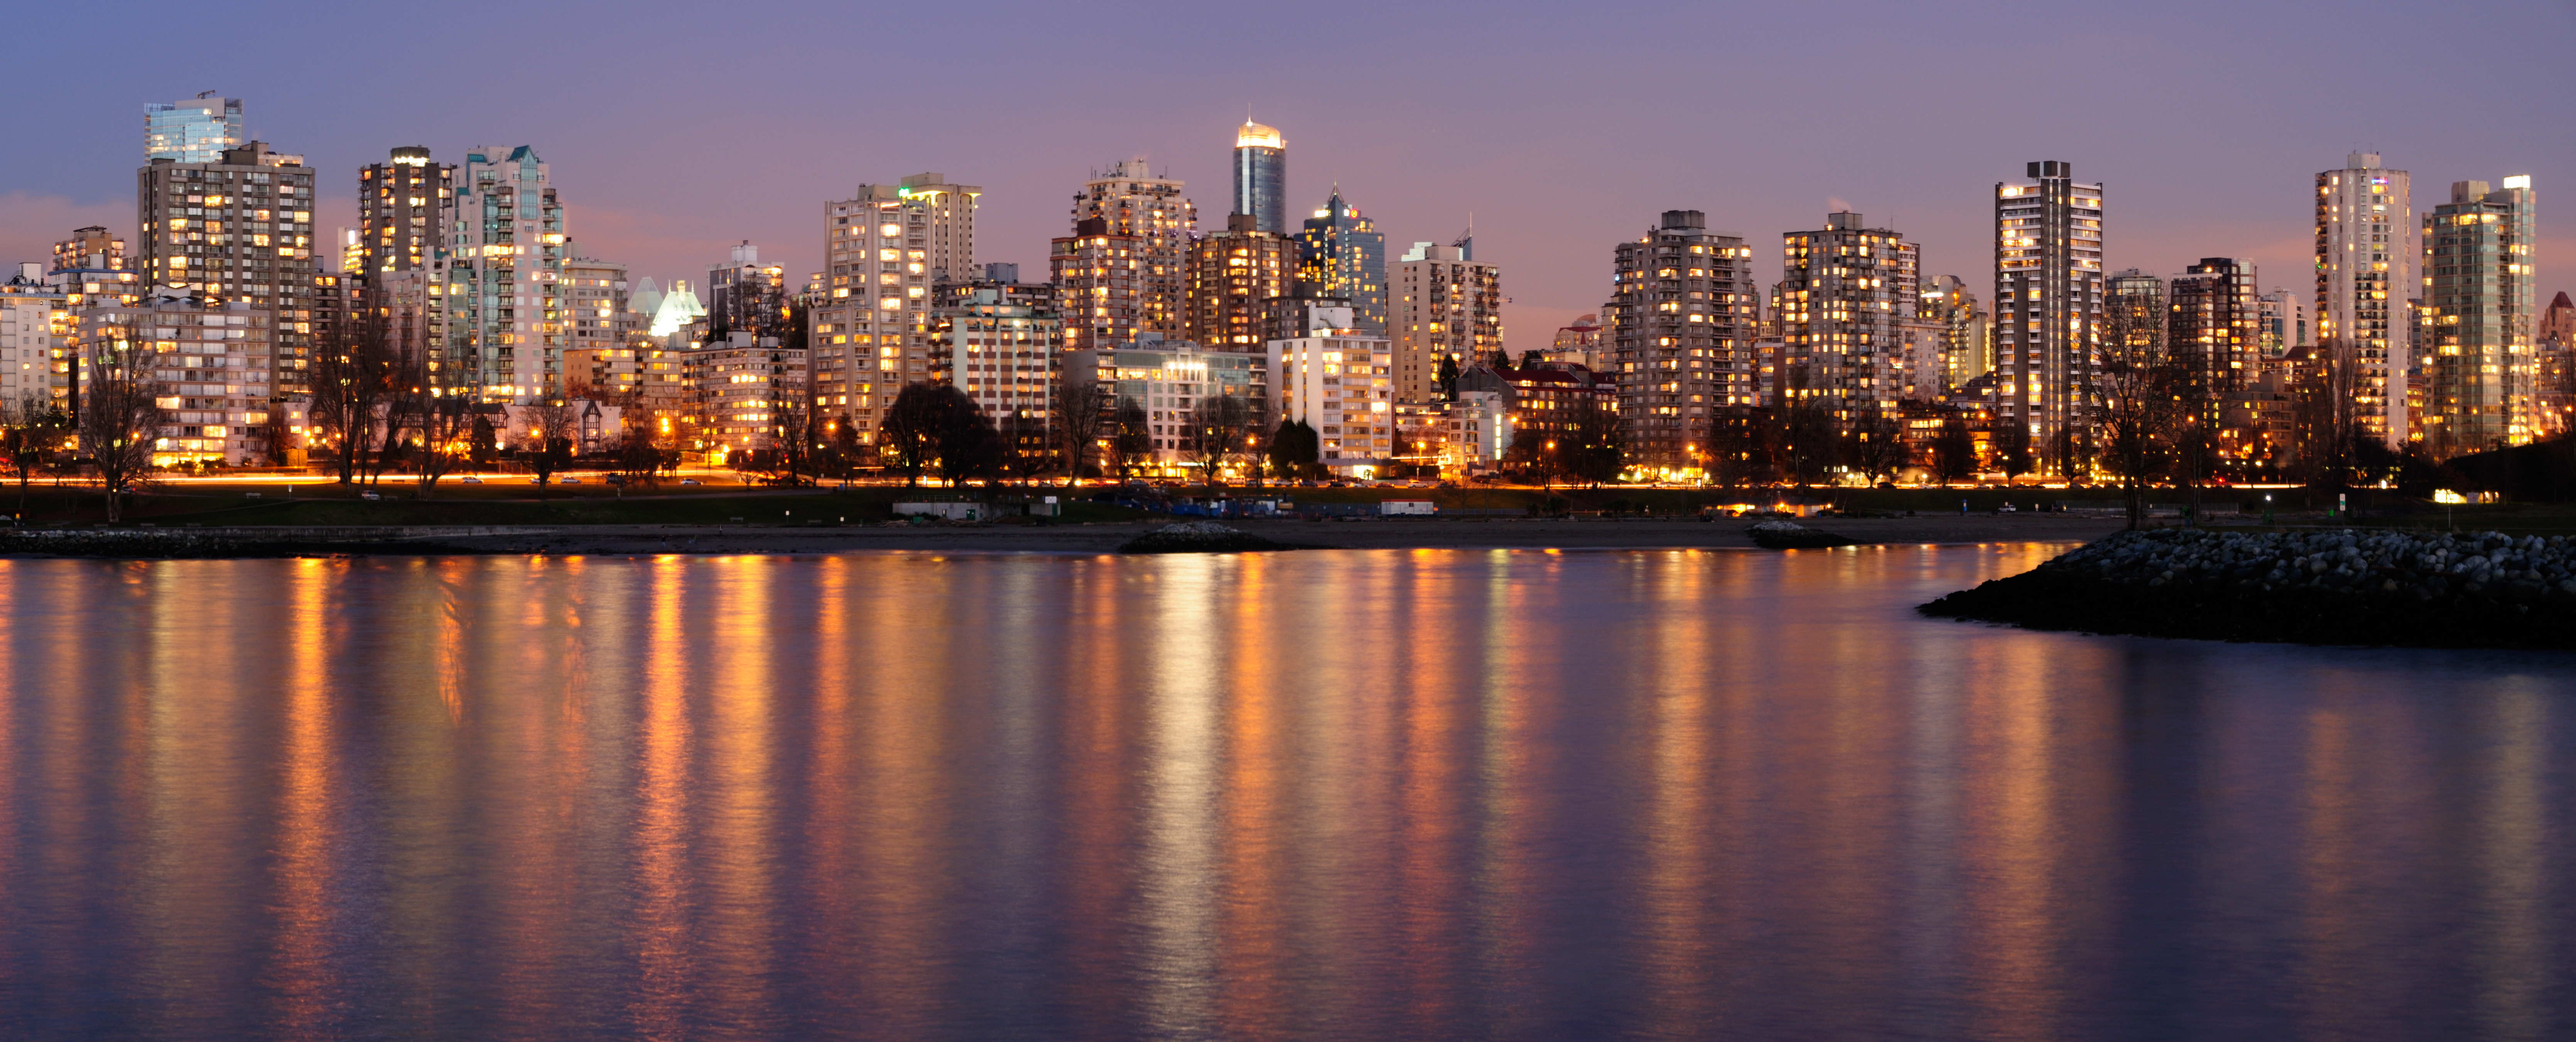 Downtown Vancouver on a winter evening - Picture of the Day #13